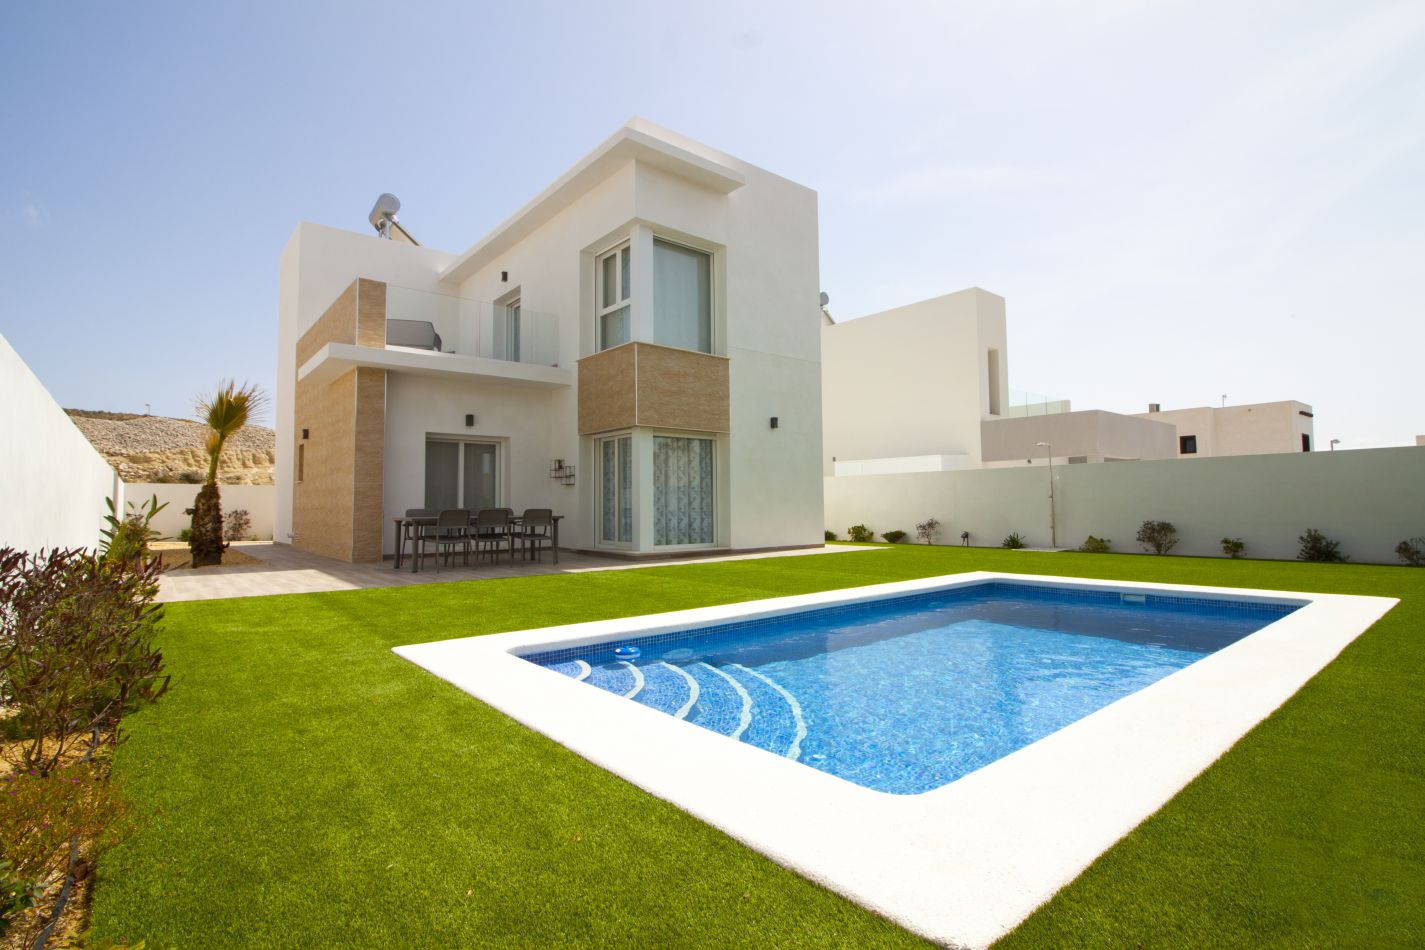 3 Bedrooms Villas For Sale Near the Golf Course La Marquesa